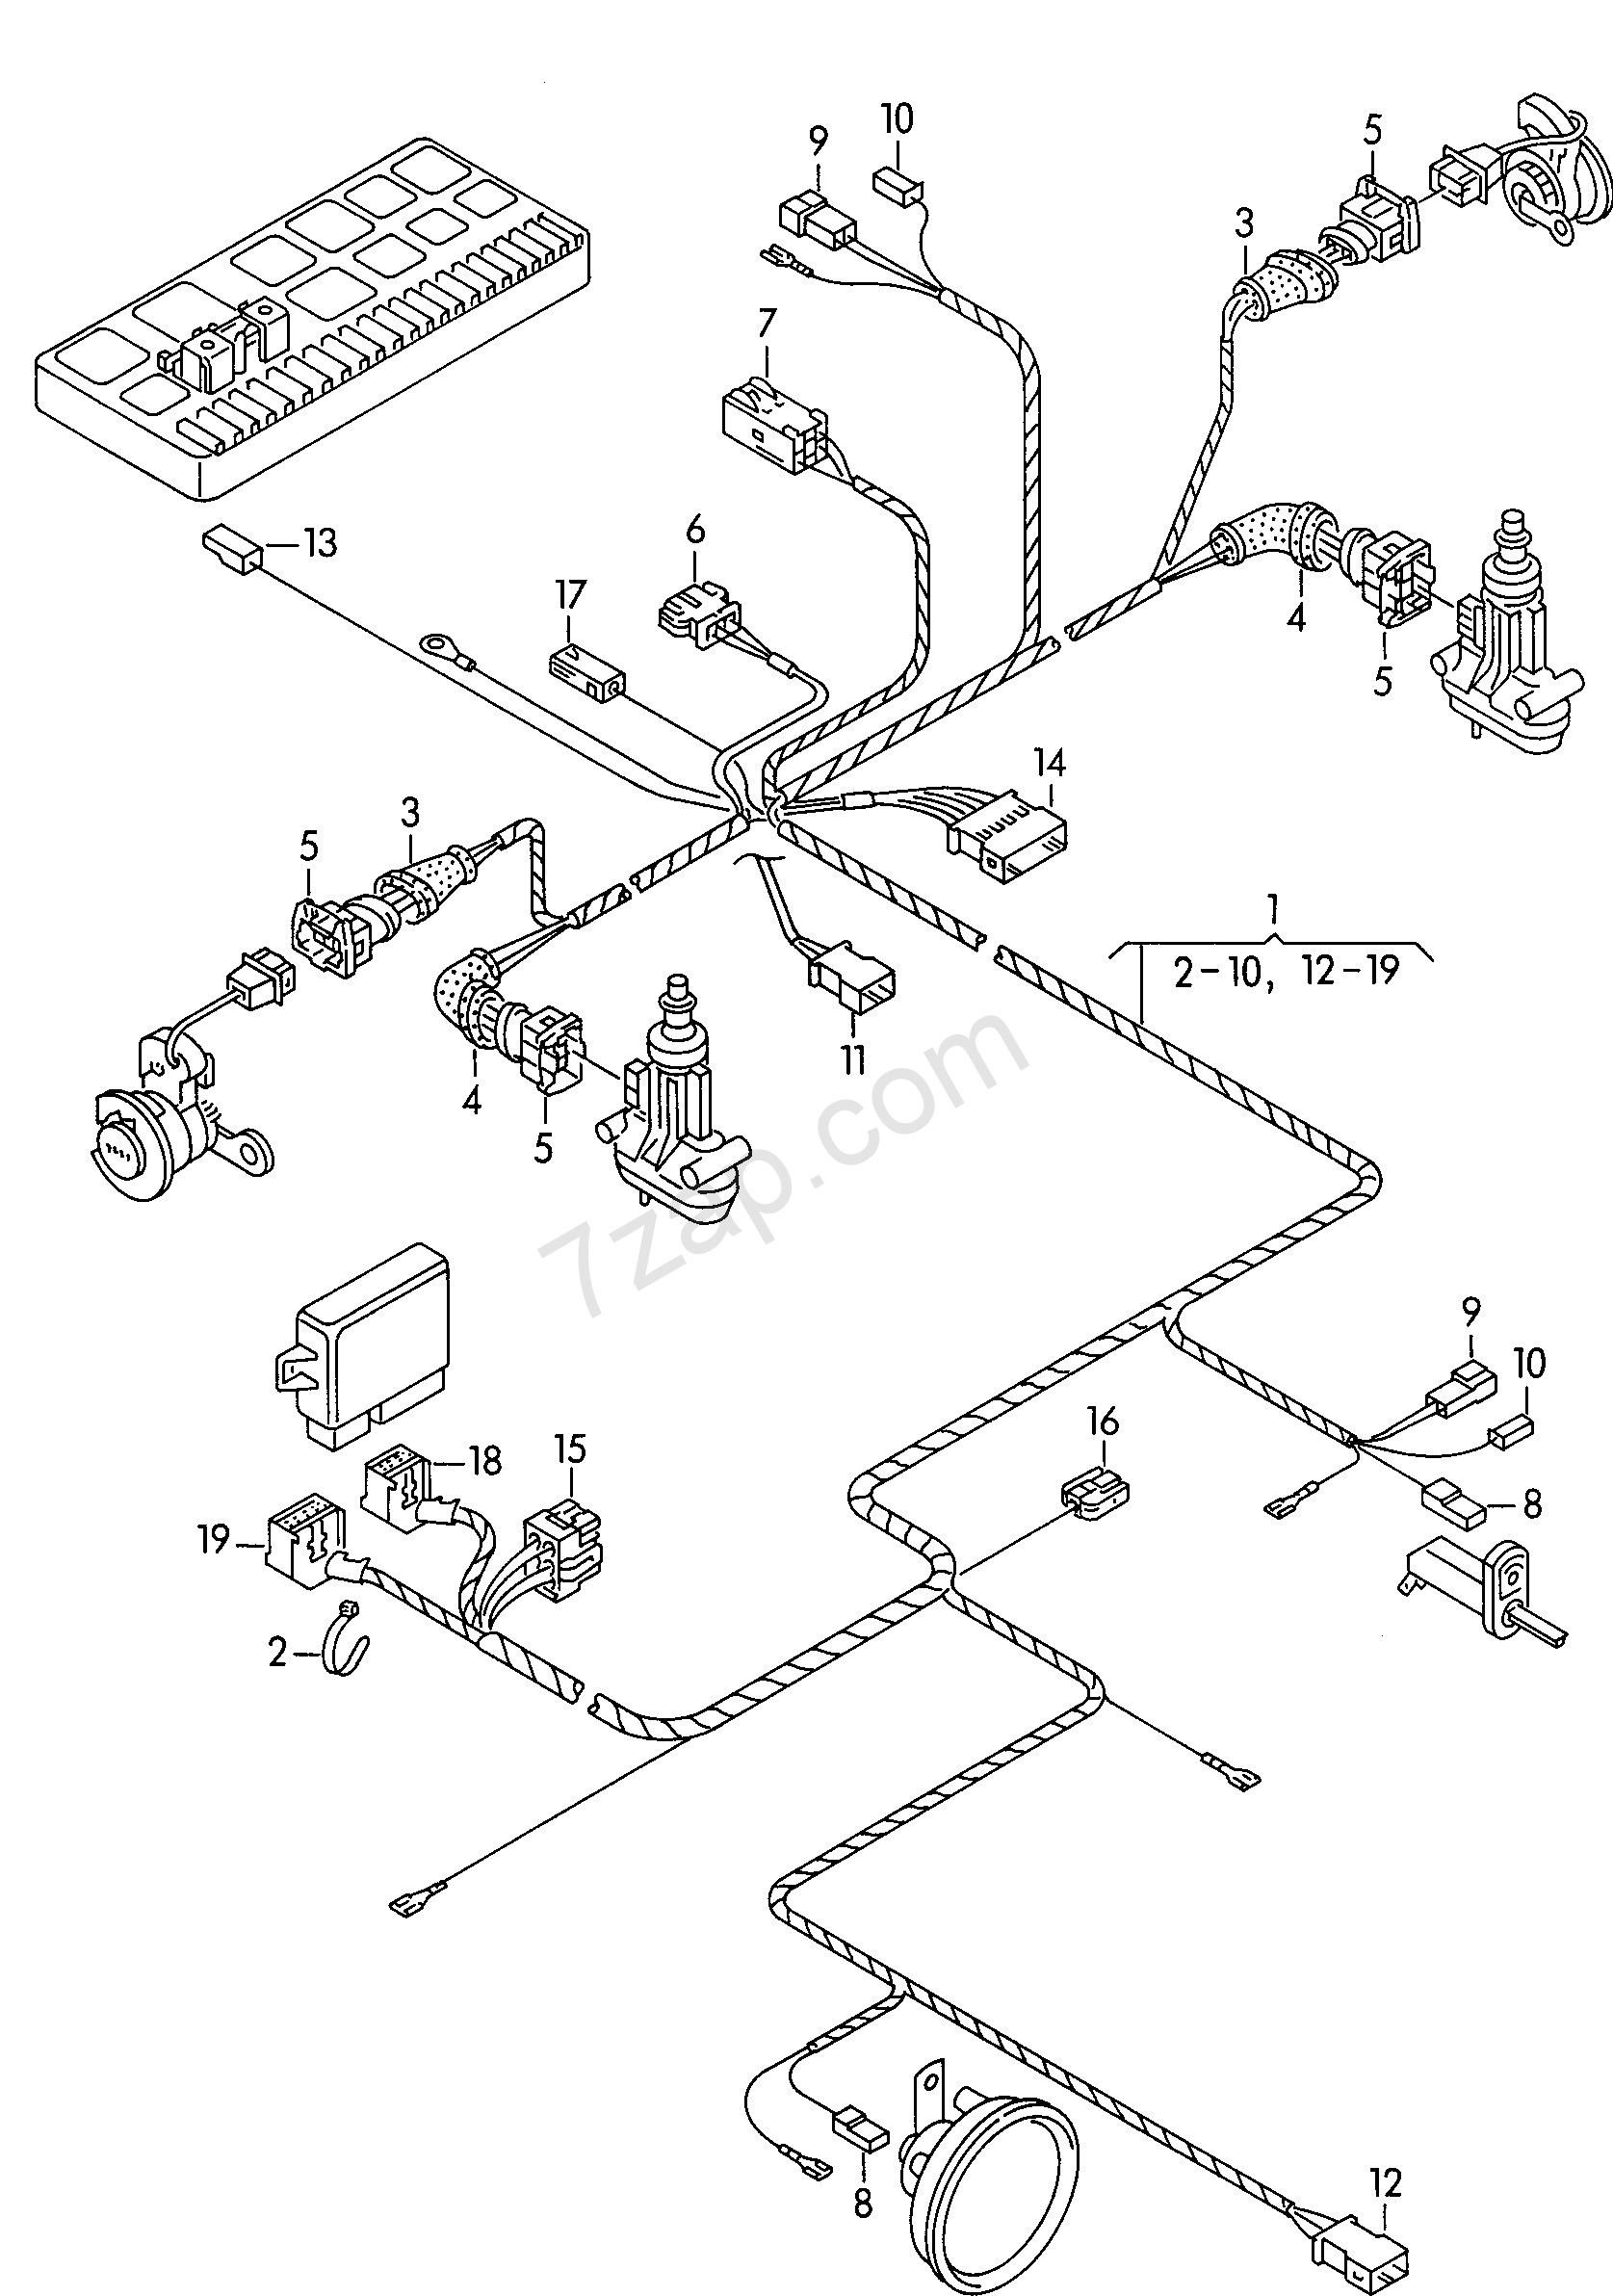 Wiring Diagram For 91 Crown Vic Com